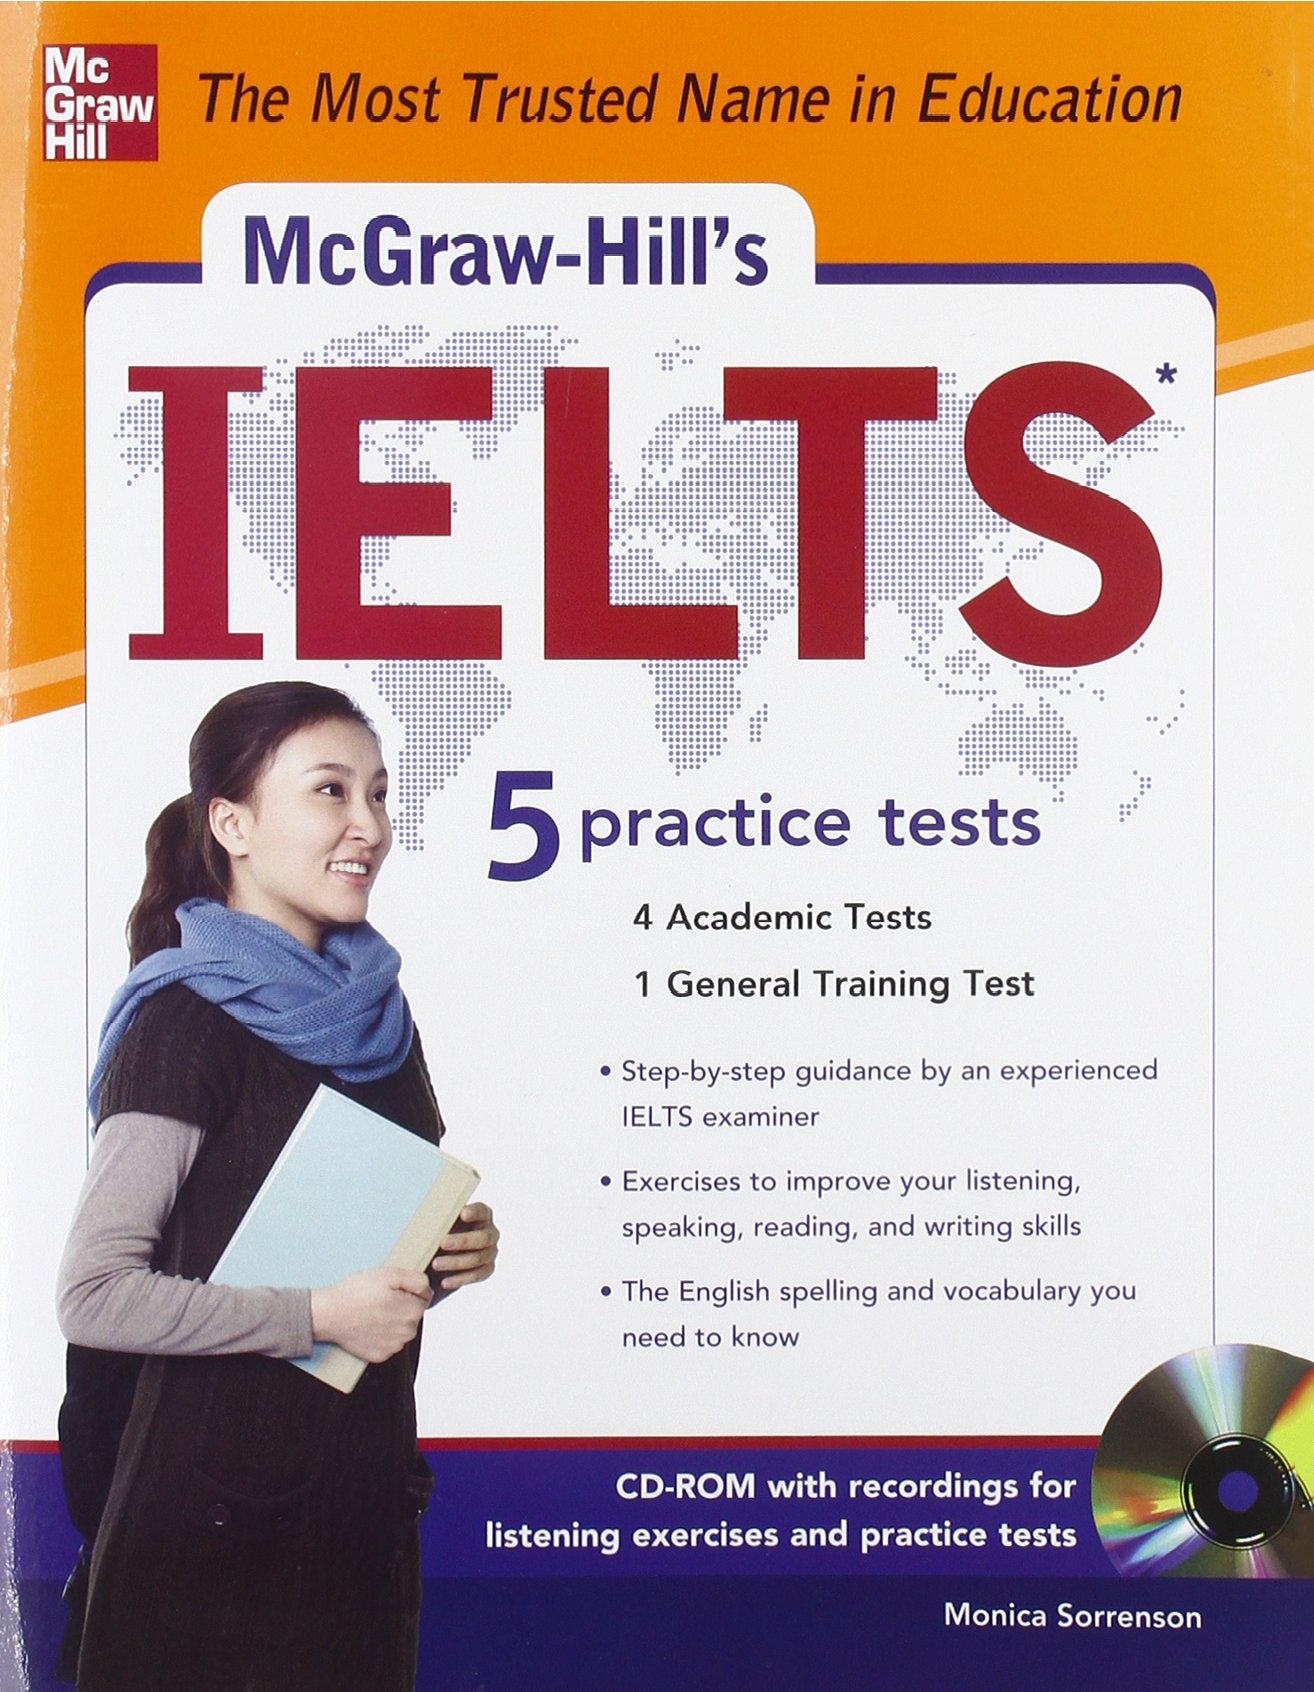 فایل پی دی اف کتاب Mc-GrawHill Education IELTS 5 Practice Tests )